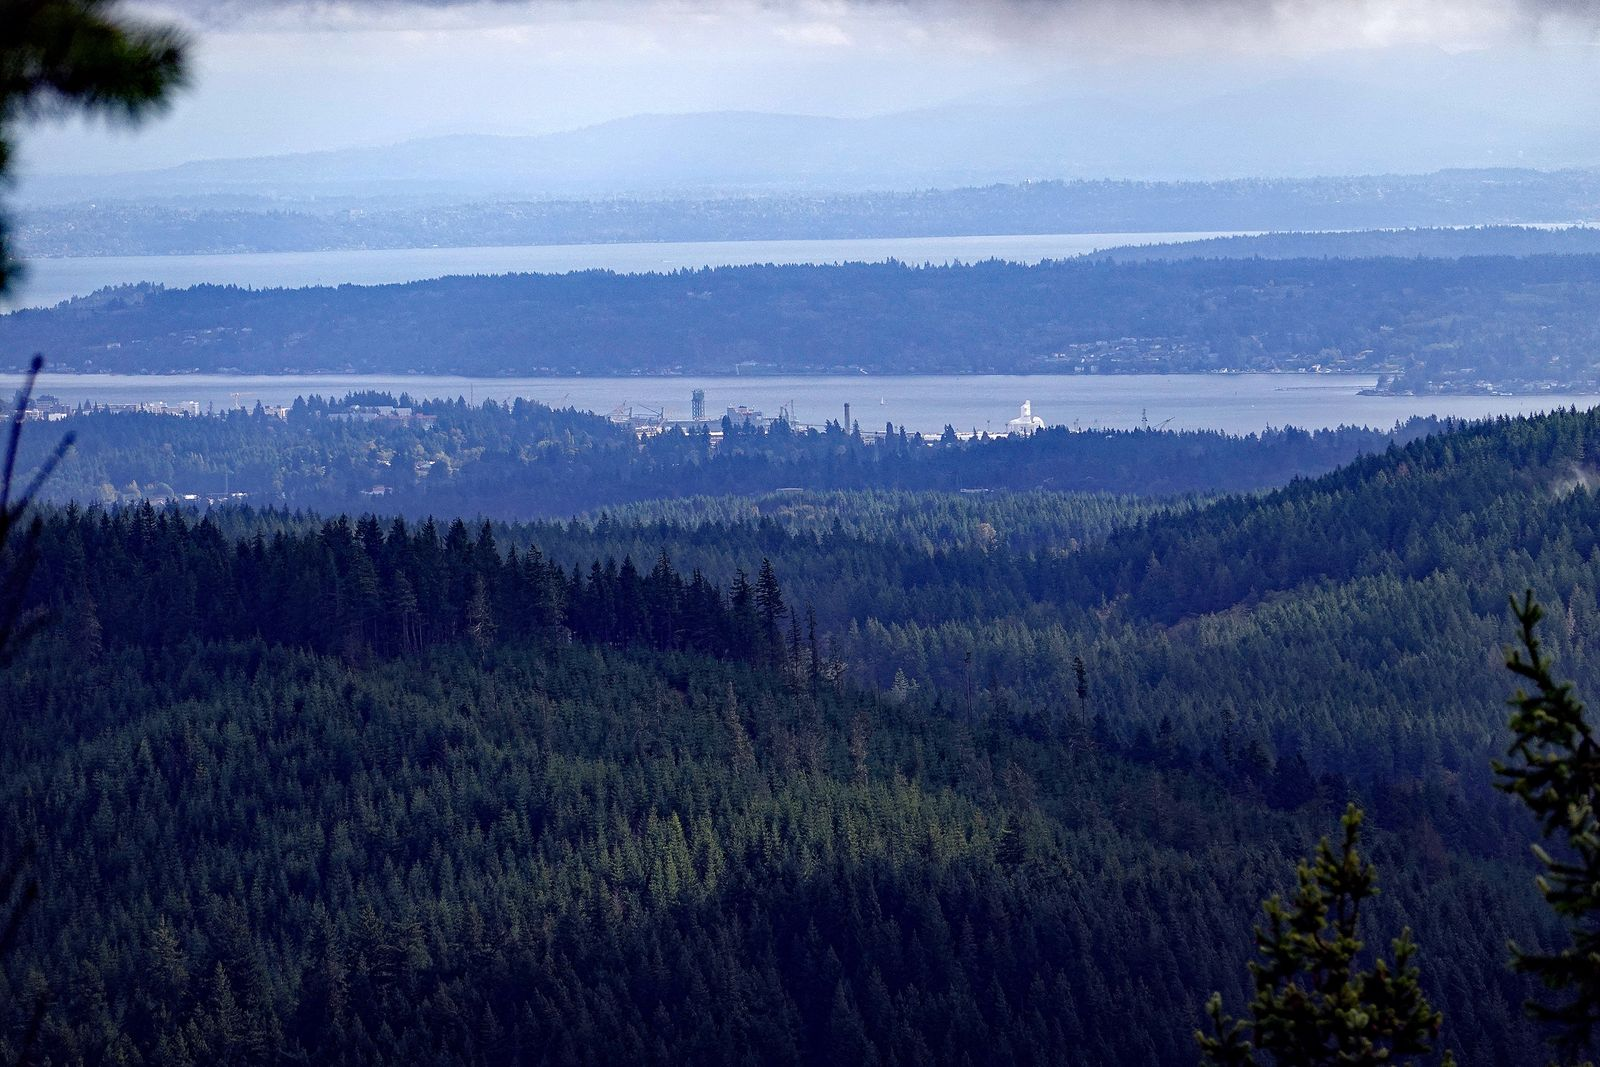 The view towards Bremerton